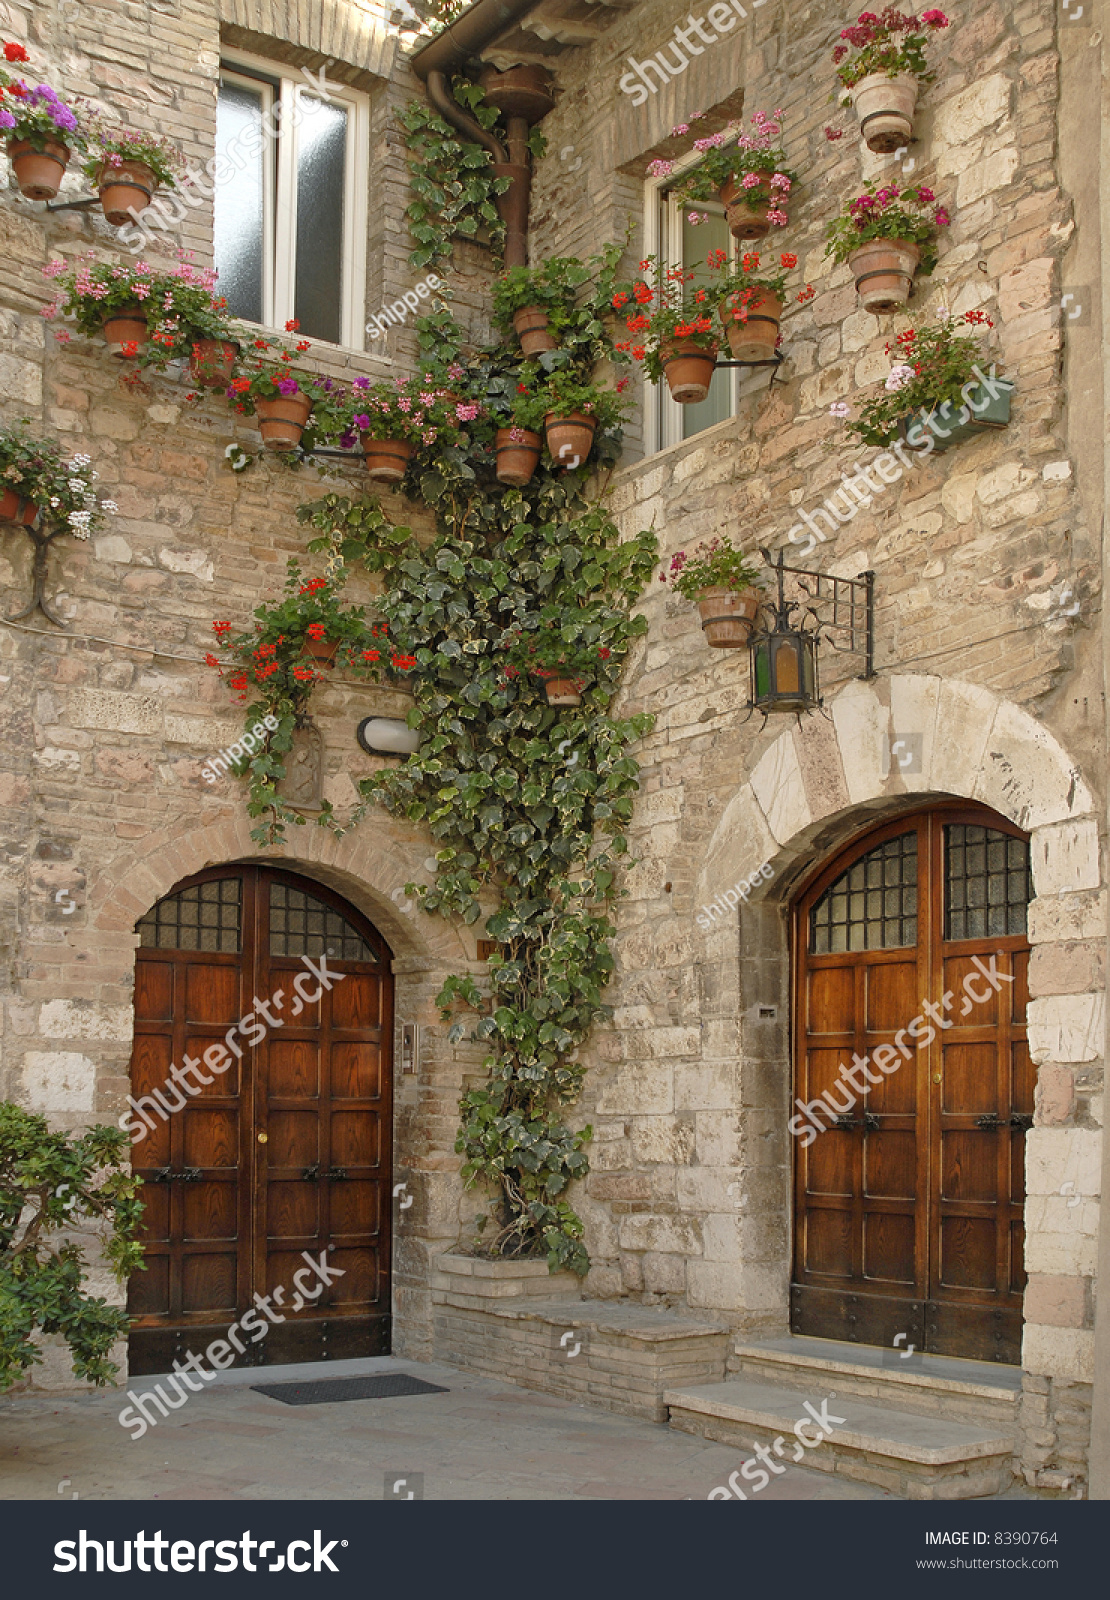 1600 #AD321E Beautiful Wooden Doors Cobblestone Walls With Potted Plants And Ivy  image Beautiful Wooden Doors 46731110